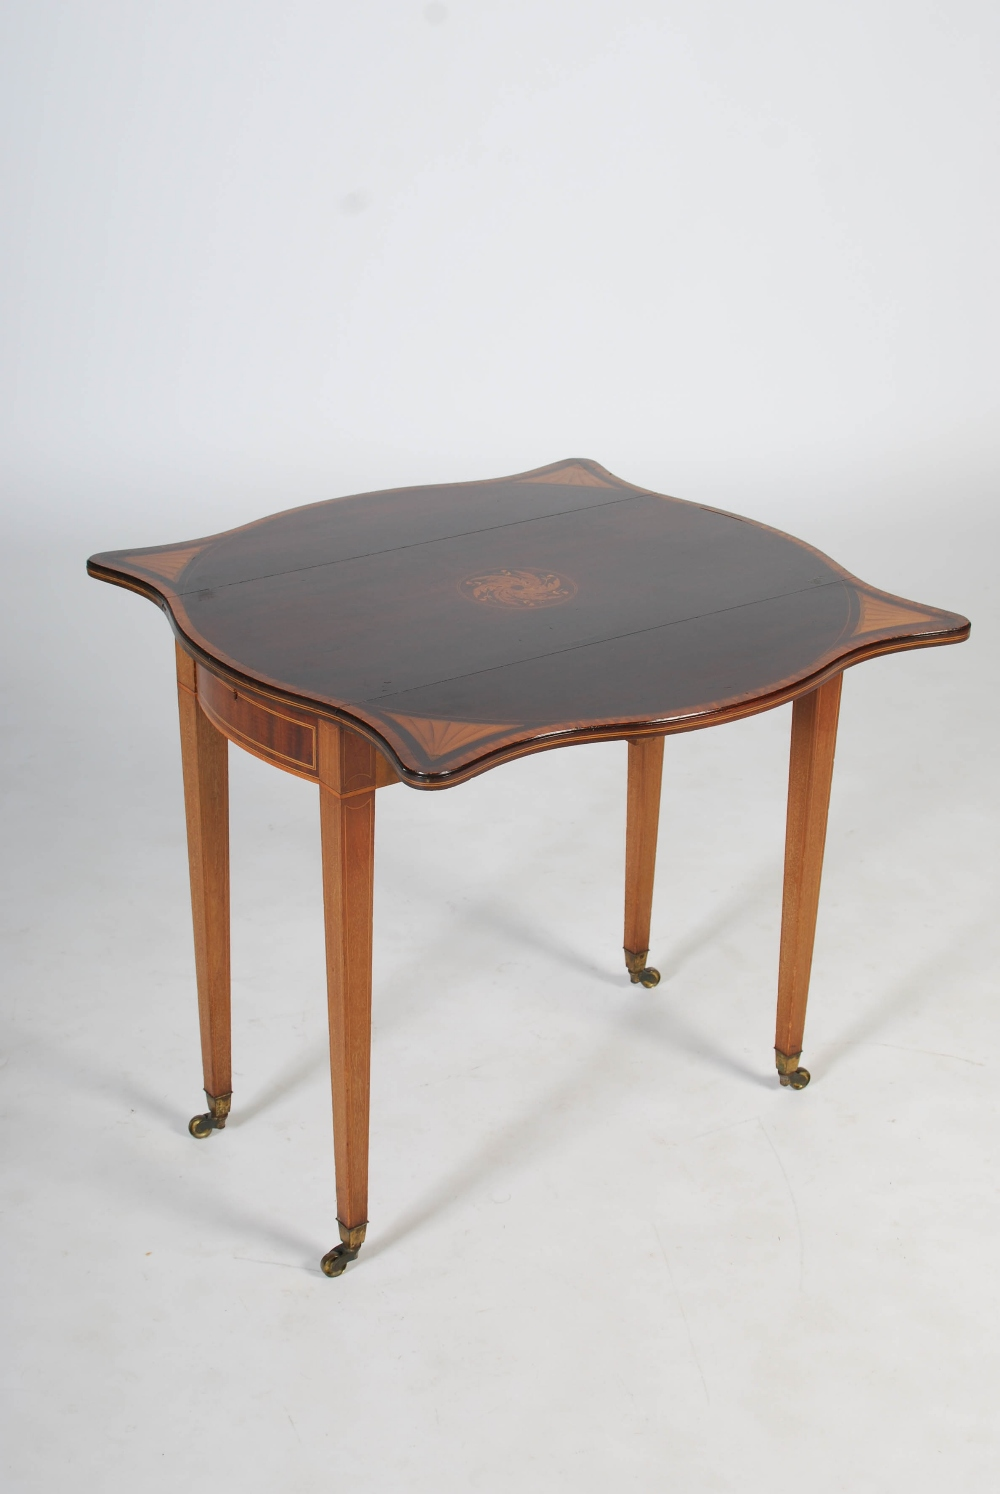 Lot 115 - An Edwardian mahogany and satinwood banded Pembroke table in the George III style, the shaped top